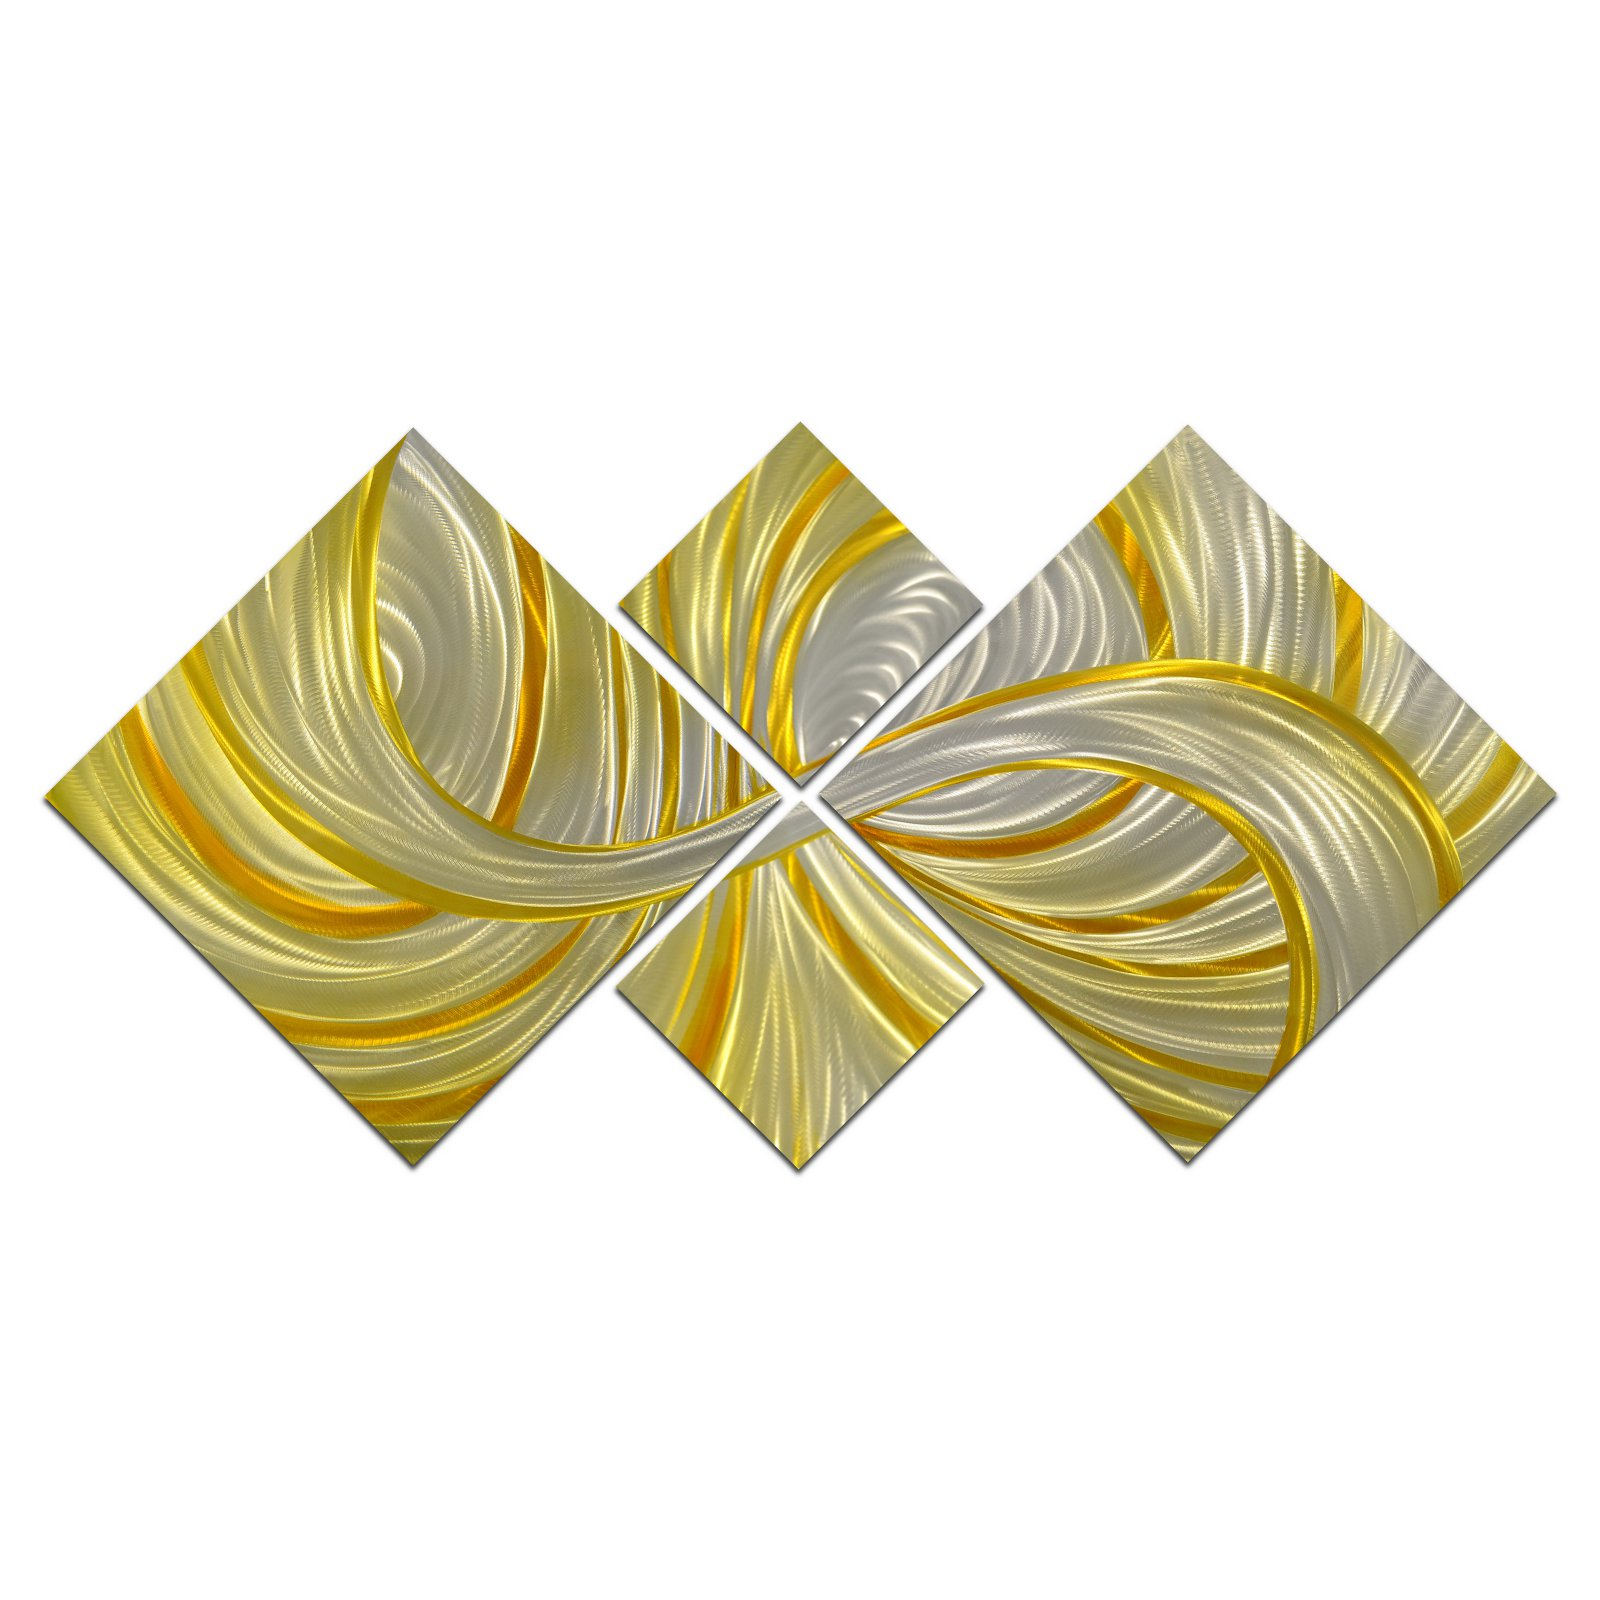 OMAX Deceptive Golden Curls Handmade Modern Metal Wall Art - Set of 4